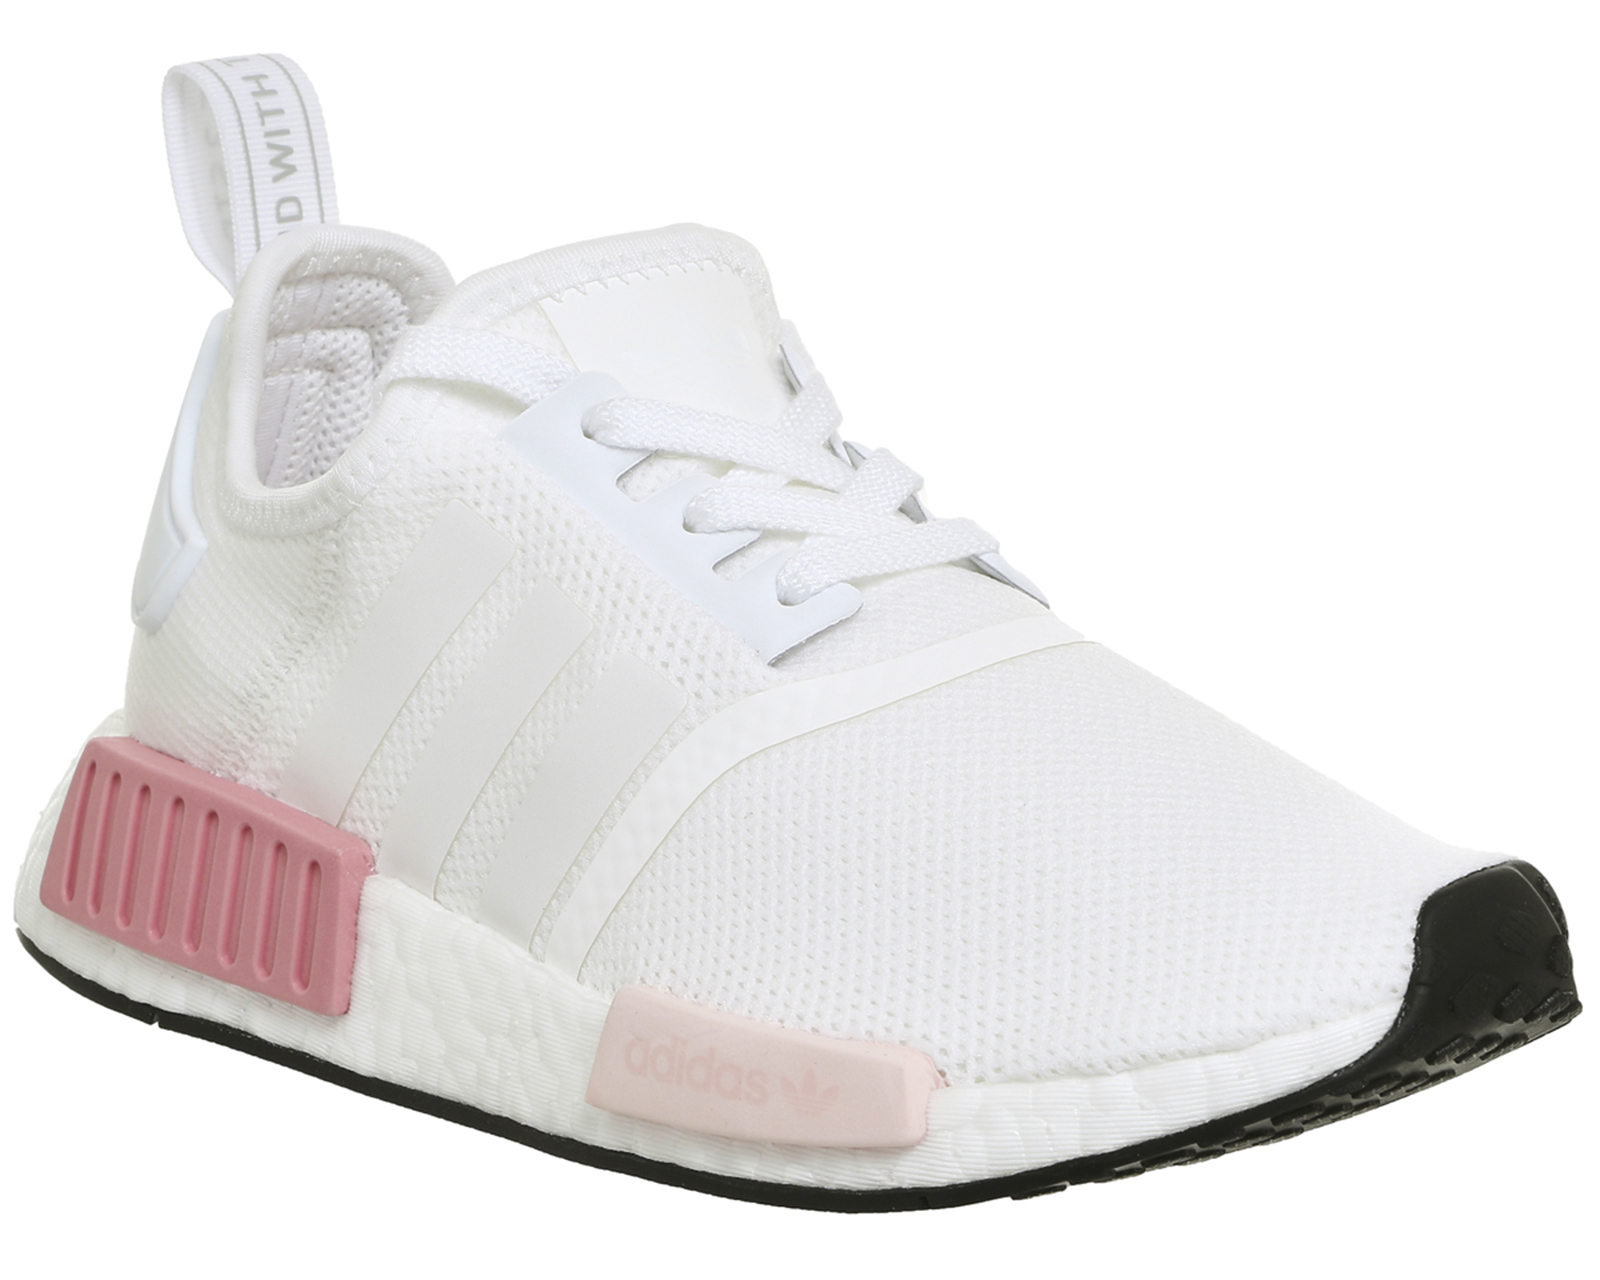 adidas nmd r1 white icey pink trainers shoes ebay. Black Bedroom Furniture Sets. Home Design Ideas